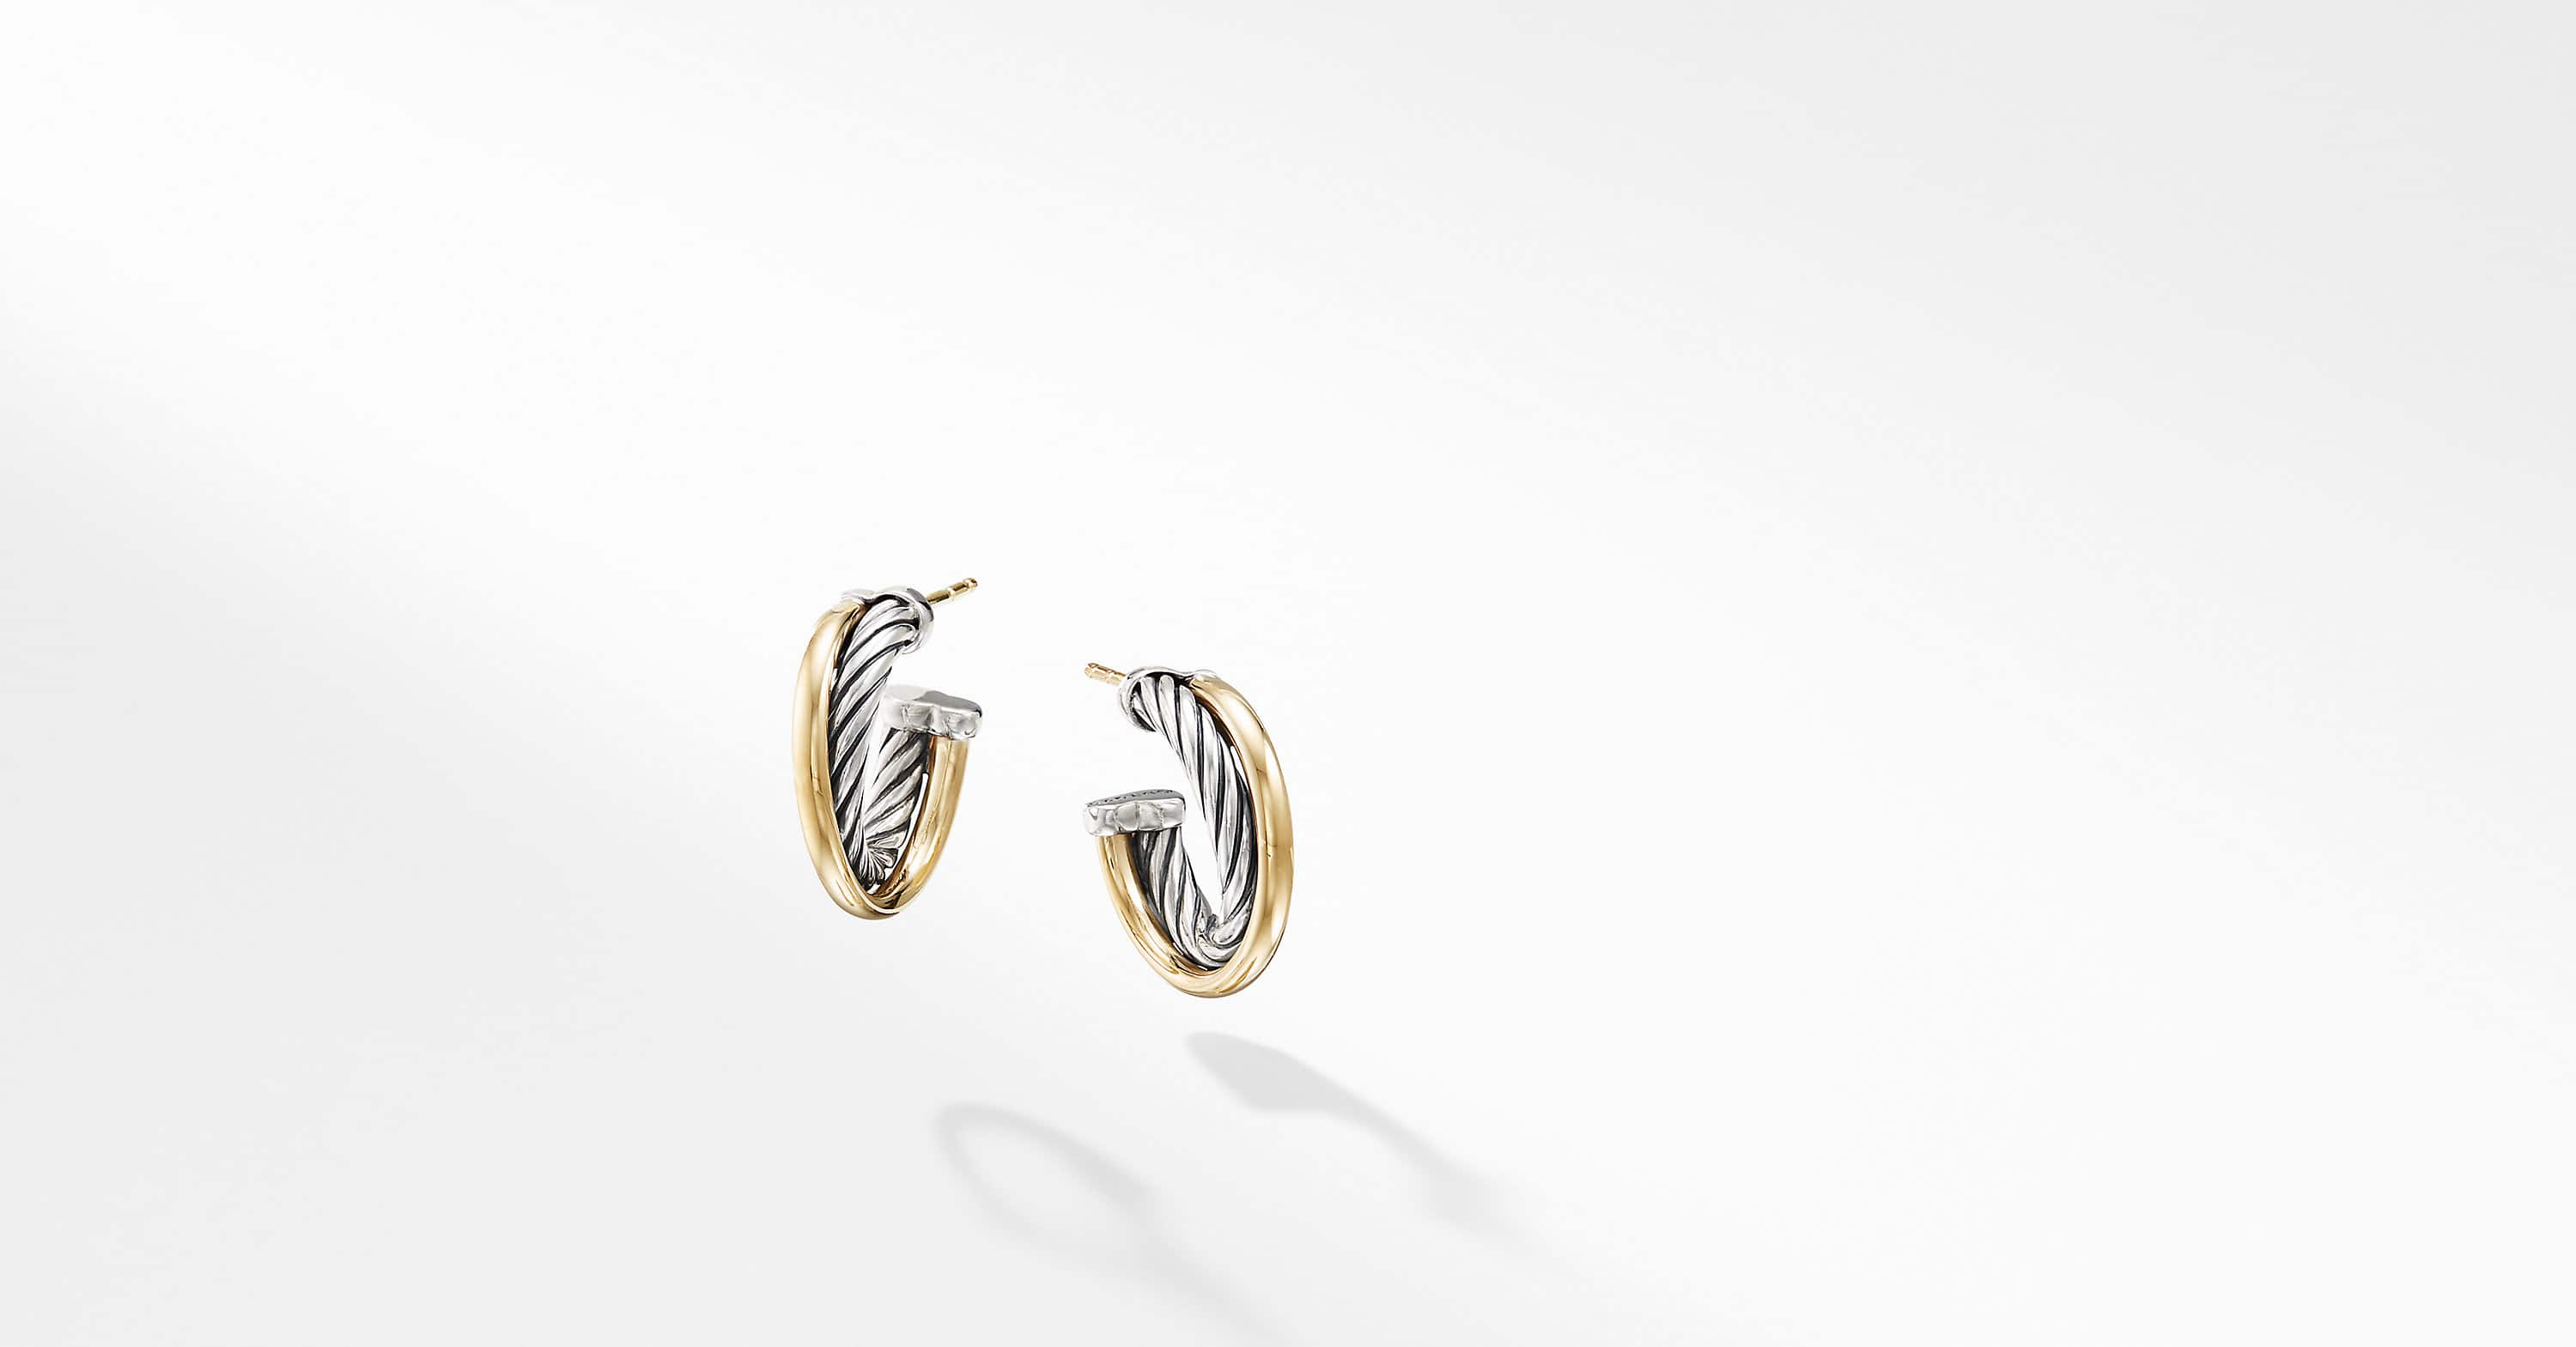 The Crossover Collection Hoop Earrings with 18K Yellow Gold